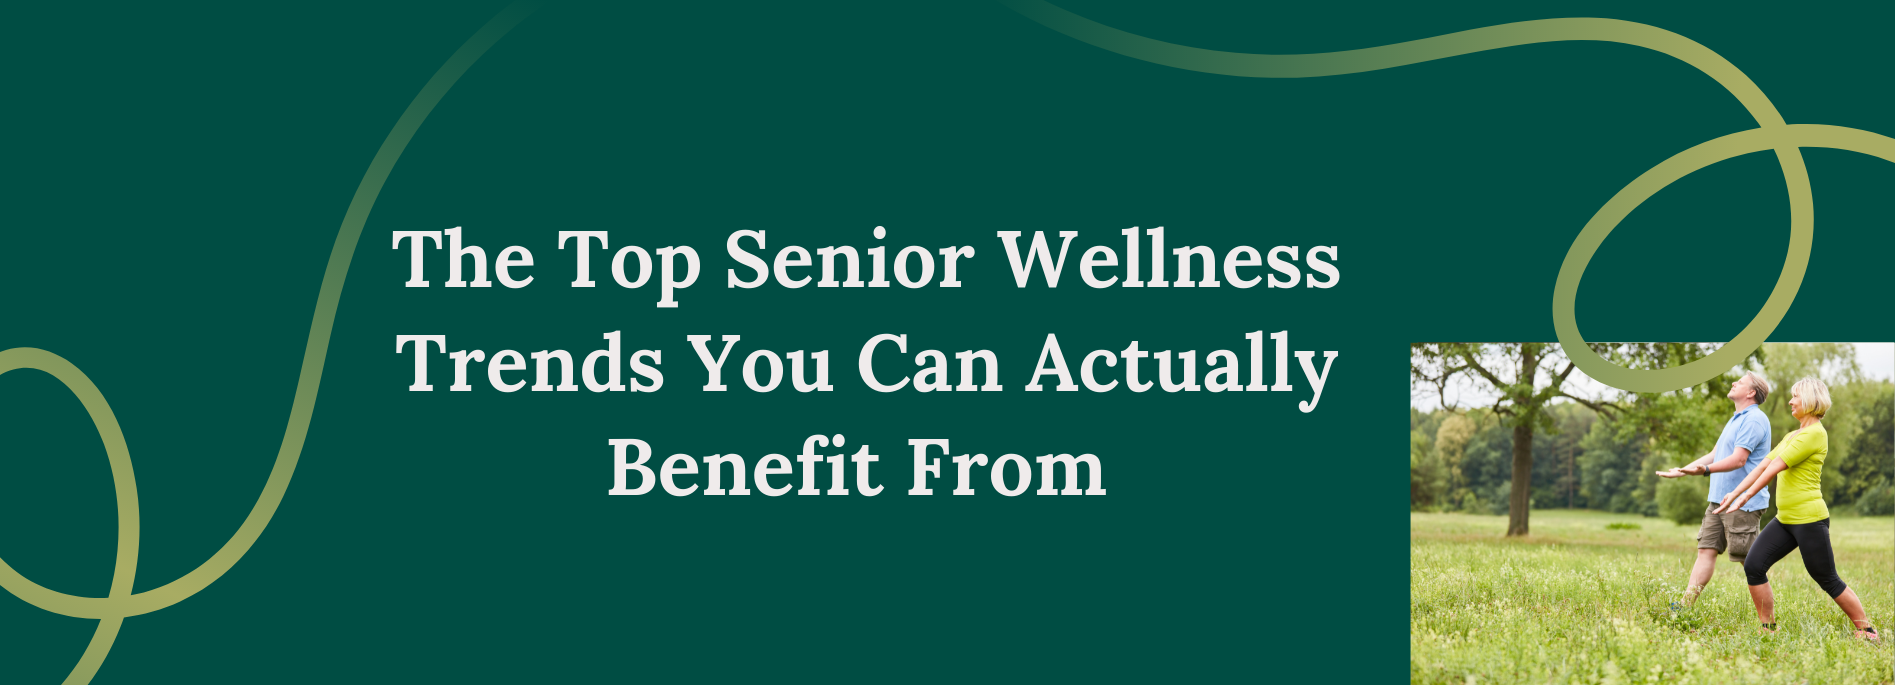 The Top Senior Wellness Trends You Can Actually Benefit From